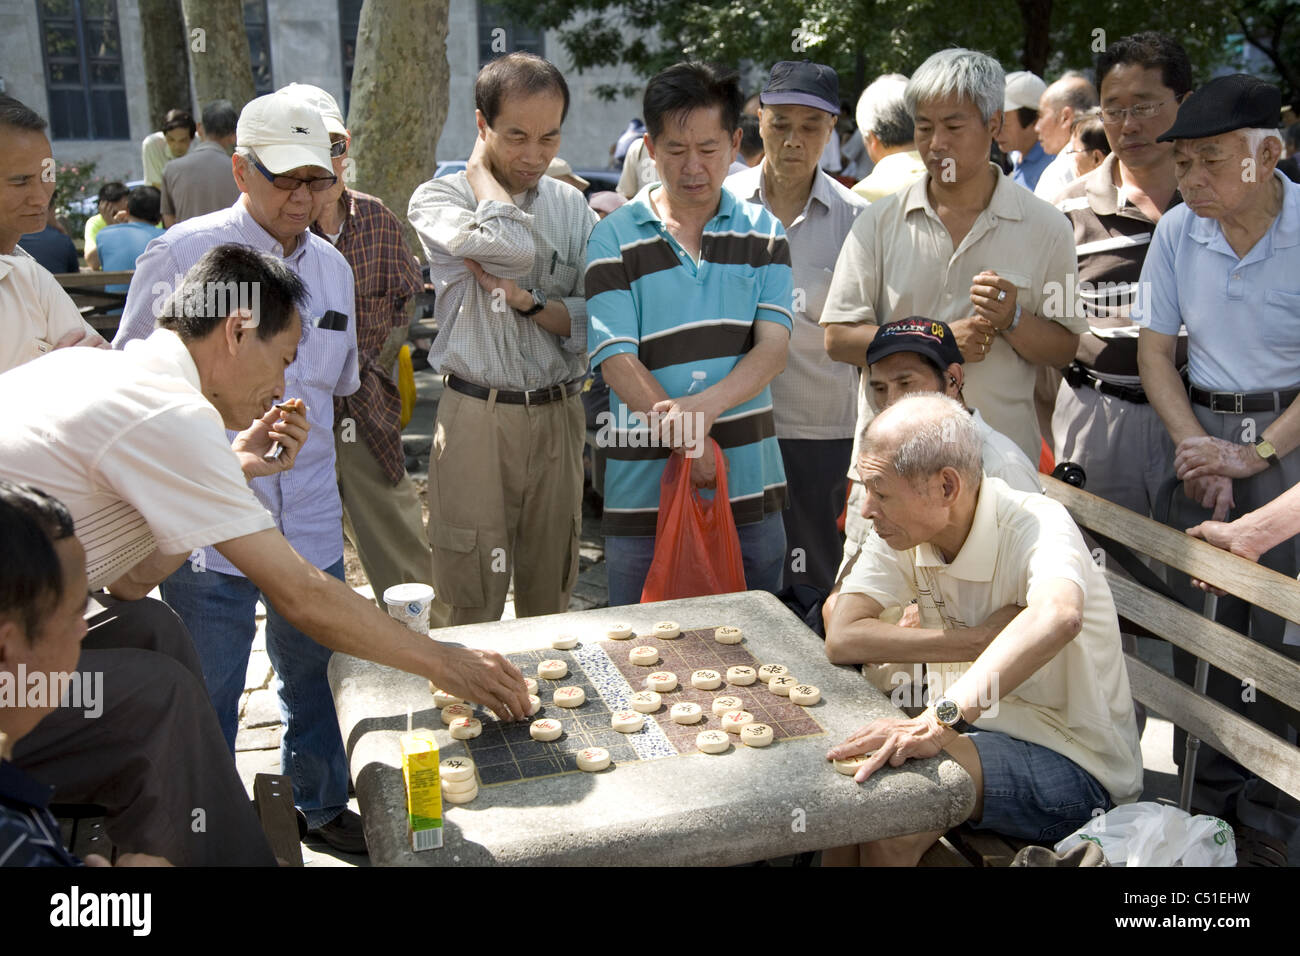 The park in Chinatown is a gathering place for Xiangqi (Chinese Chess) in New York City. - Stock Image